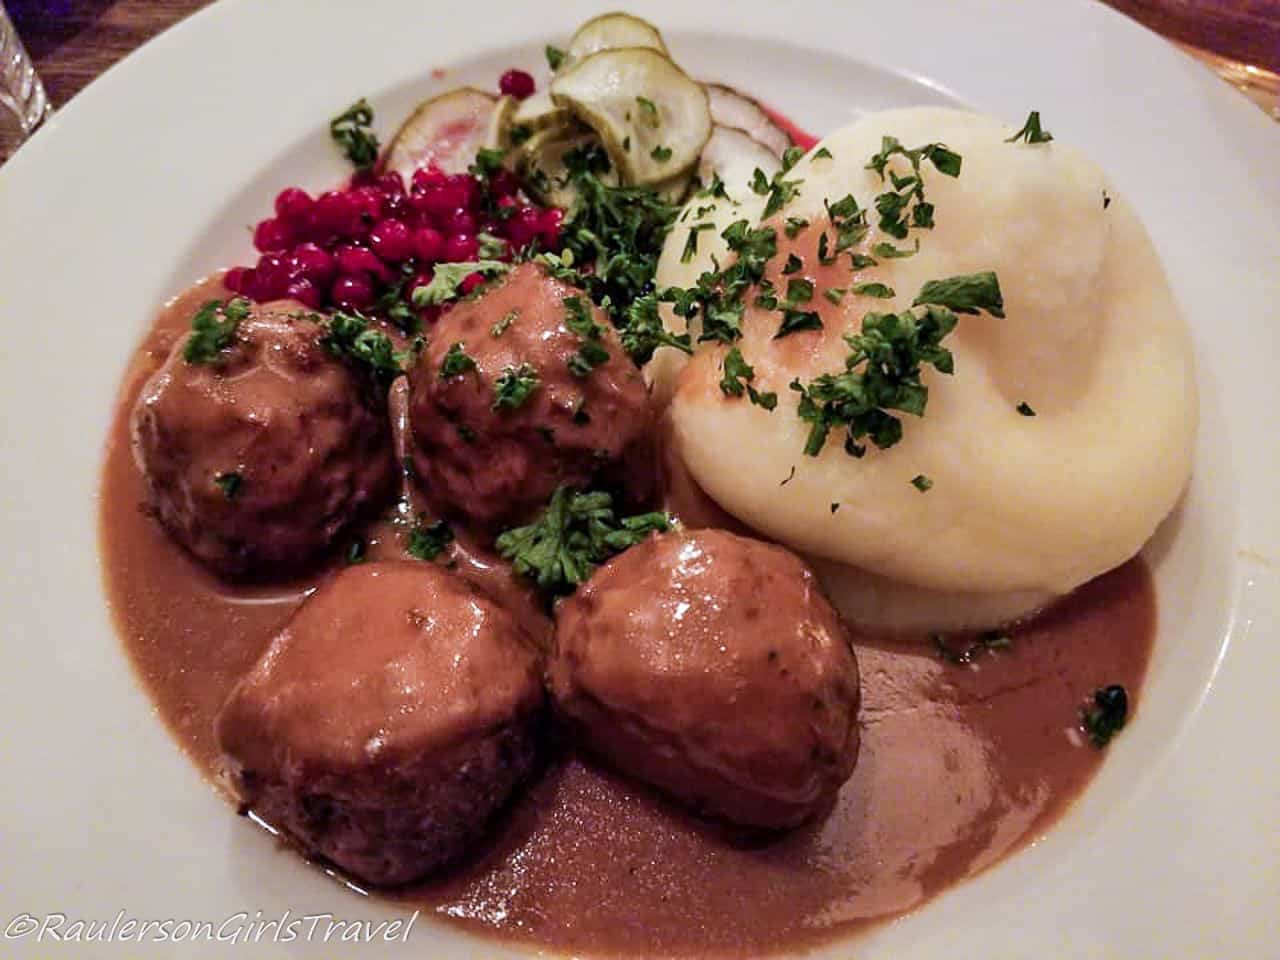 Swedish Meatballs and Mashed Potatoes in Sweden